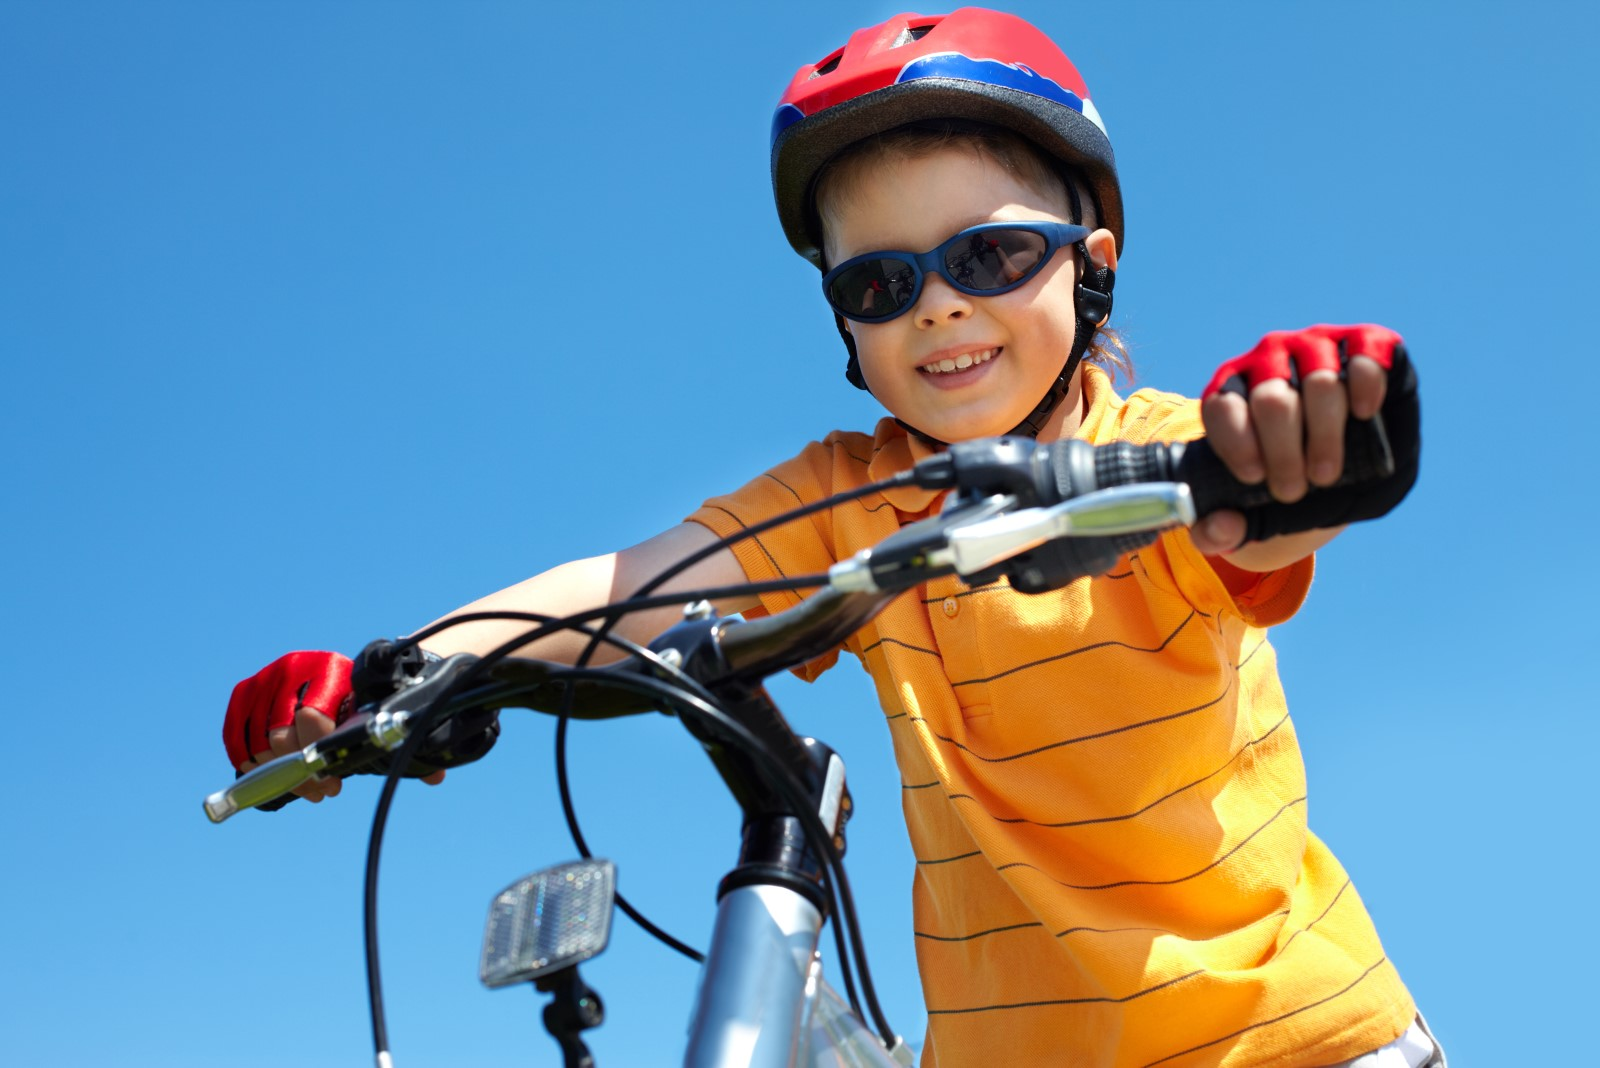 boy in red helmet holding bicycle handlebars